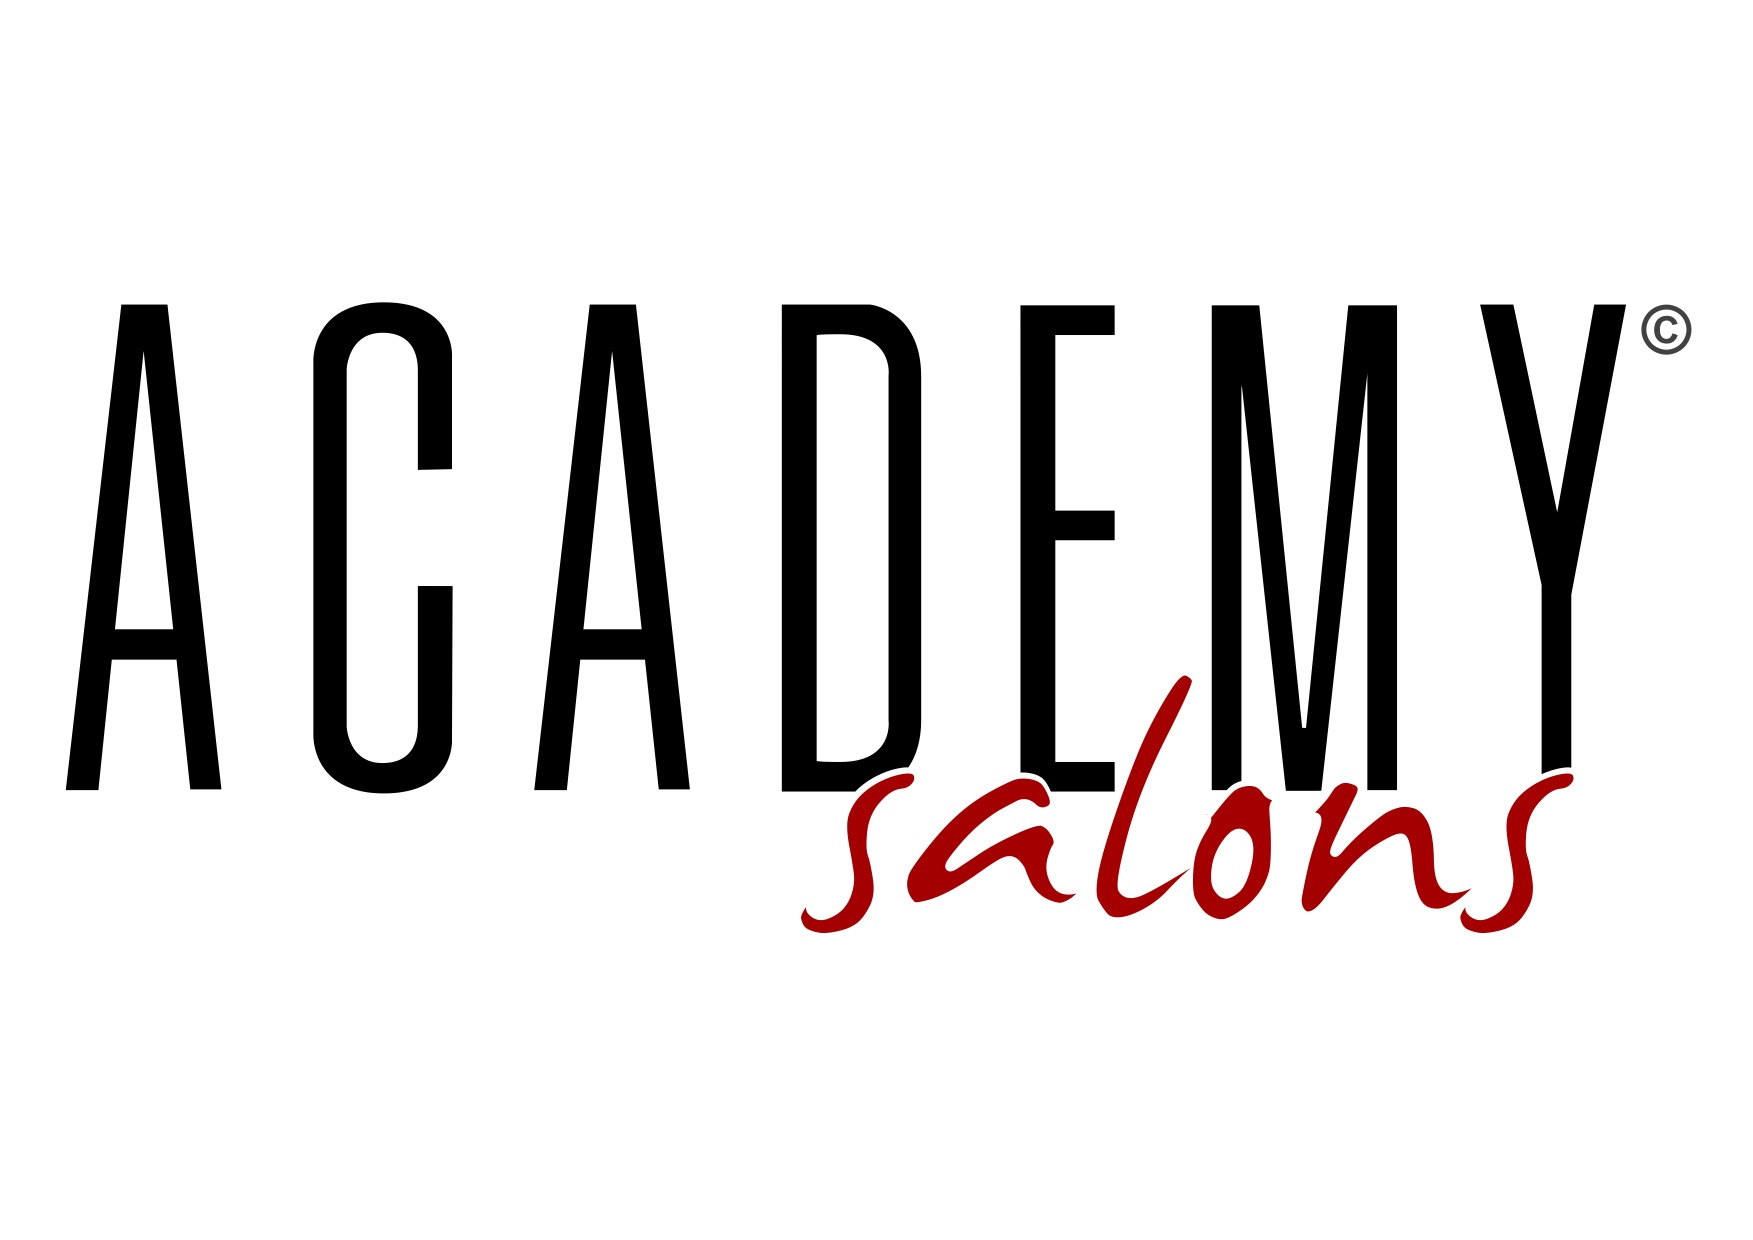 Academy salons salon reviews salonspy uk for Academy salon cobham